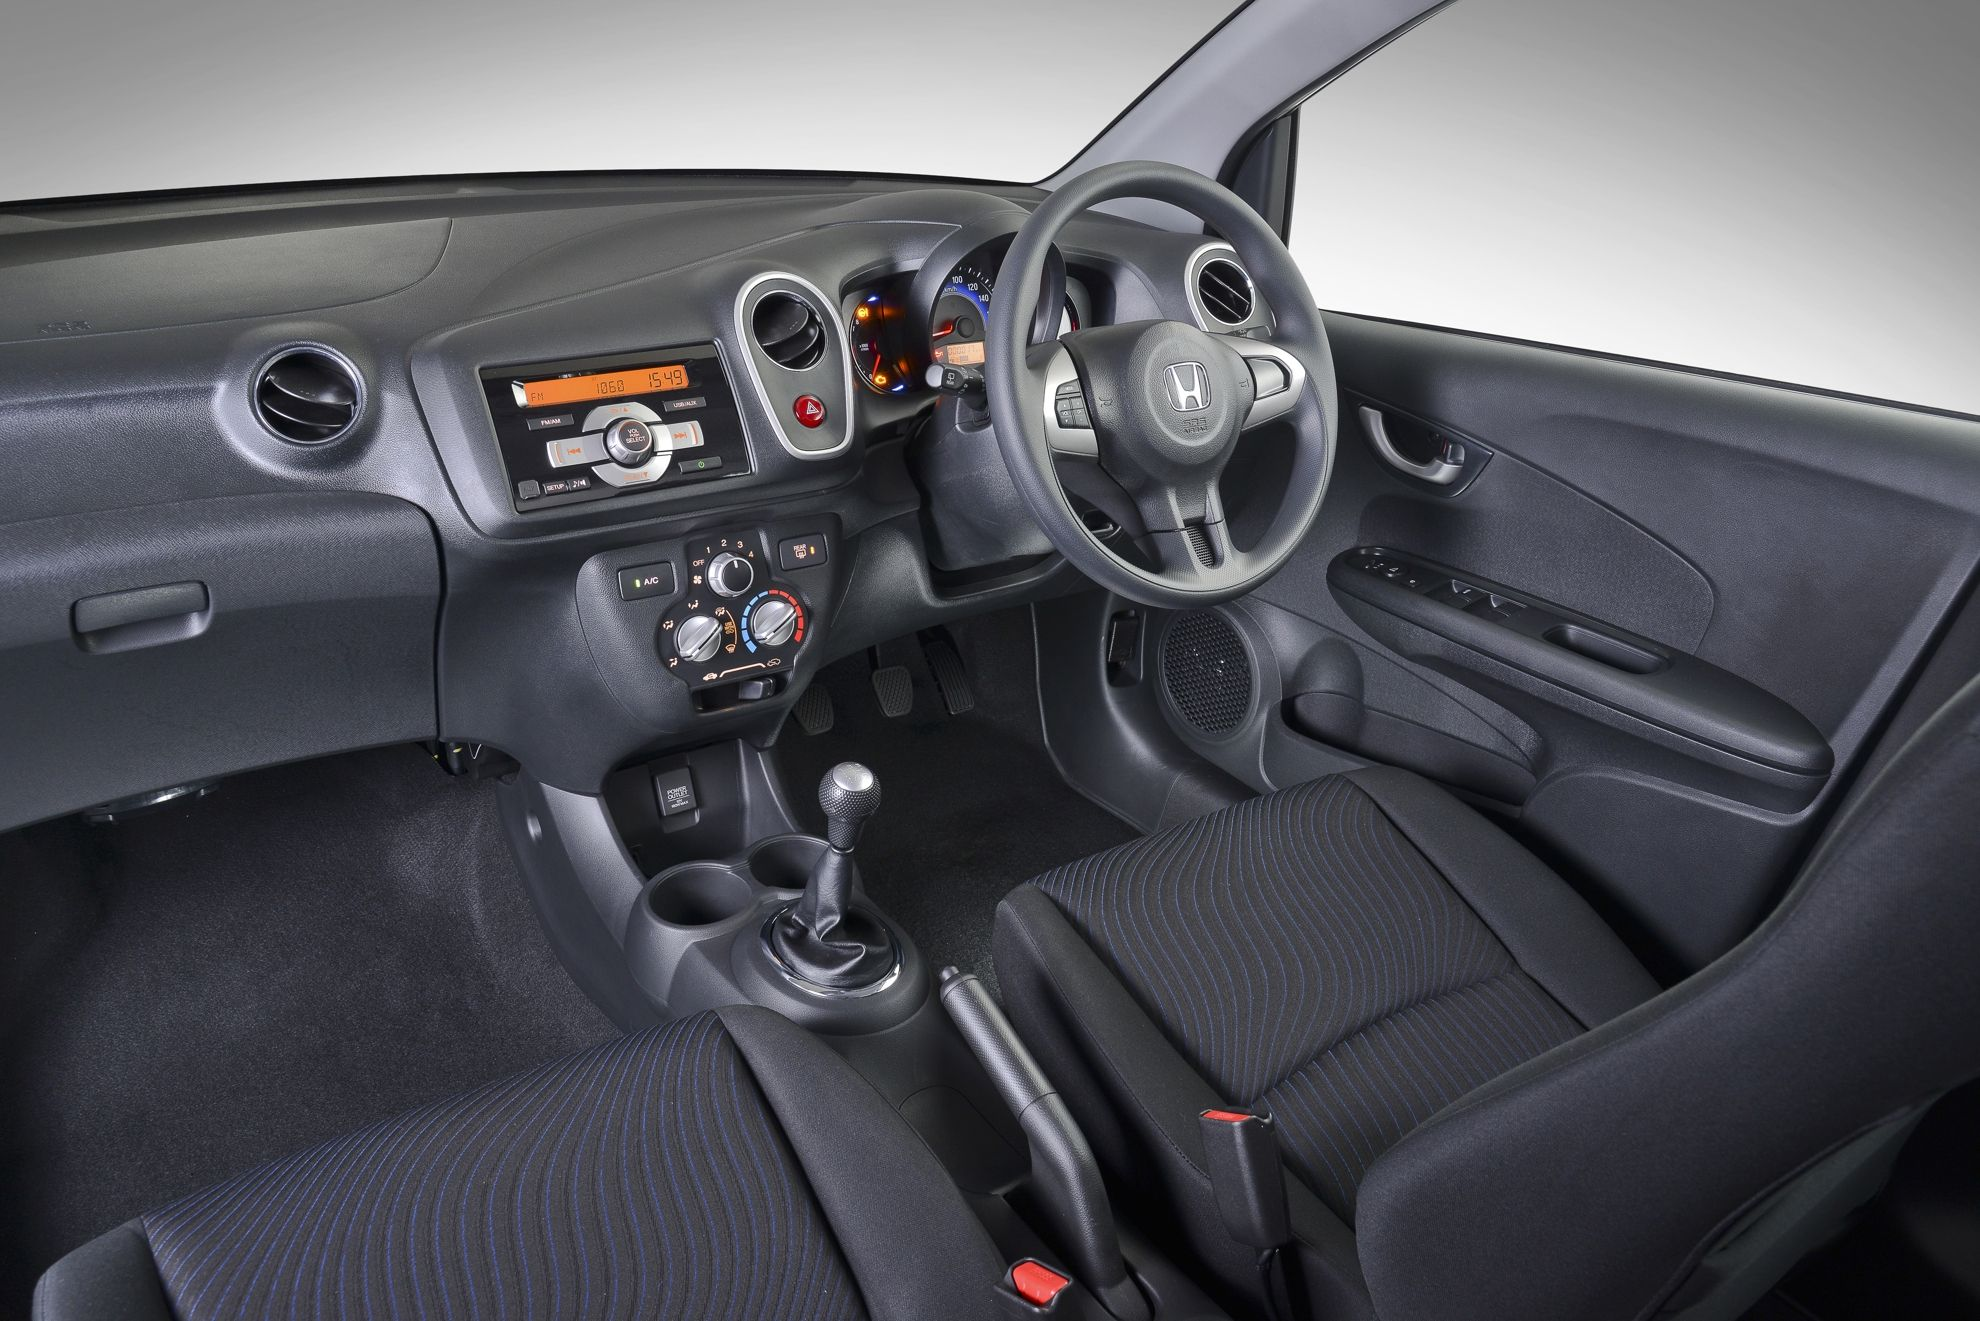 2015 honda mobilio interior wide hd wallpaper wow amazing car